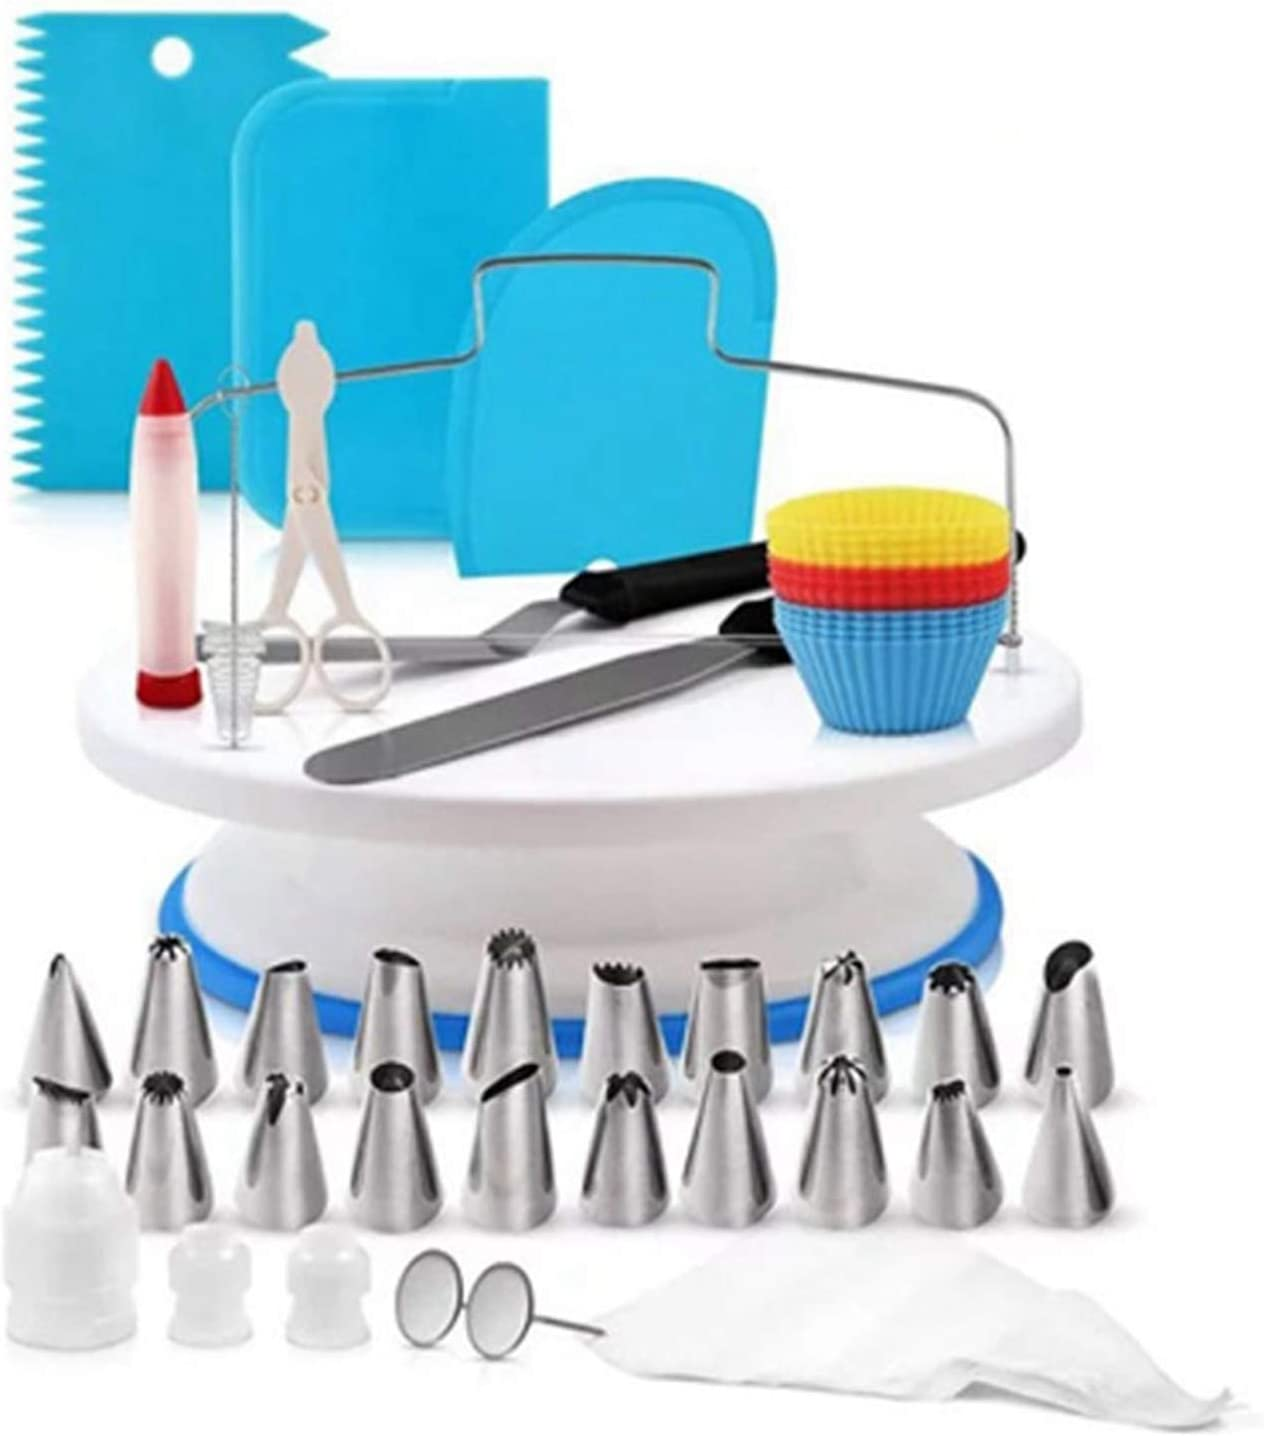 Cake San Diego Mall Decorations Baking Accessories Max 47% OFF Turntable Kitchen U Set